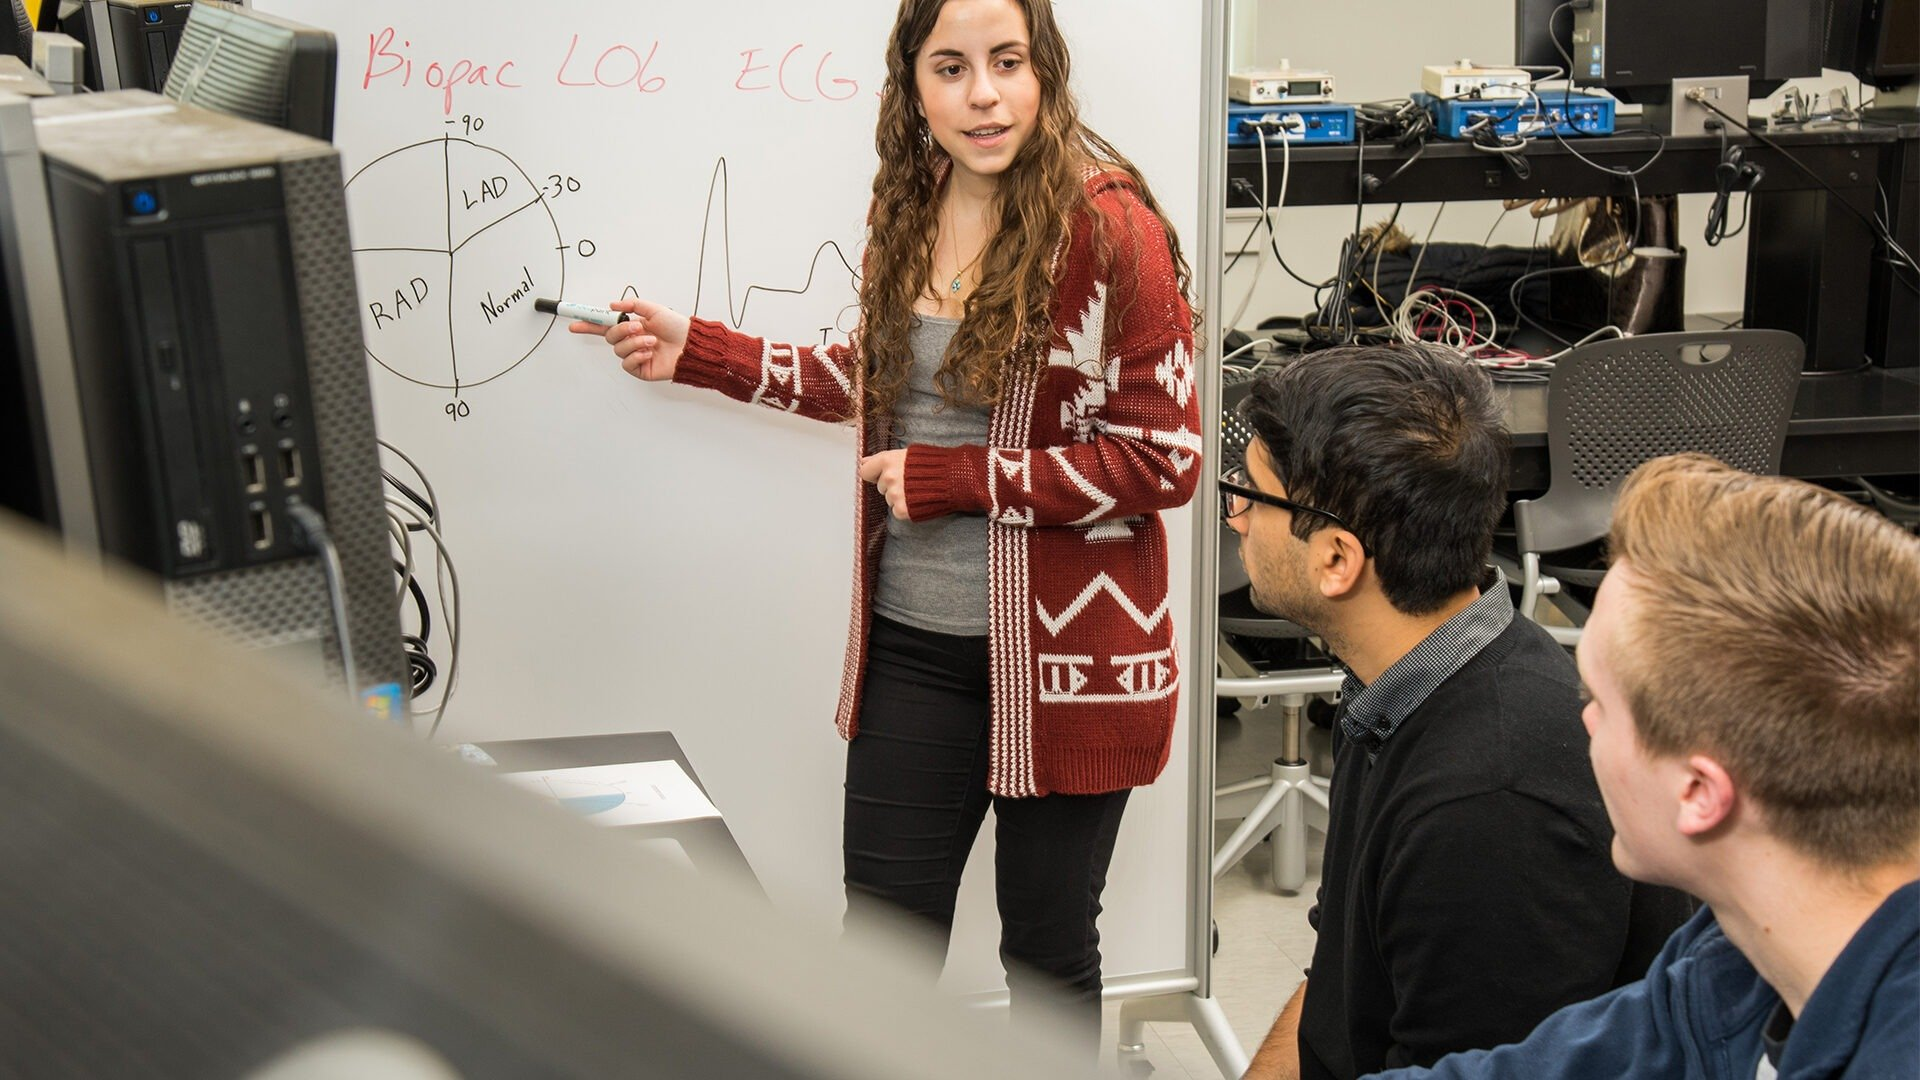 A female student stands at a whiteboard discussing something with two classmates.